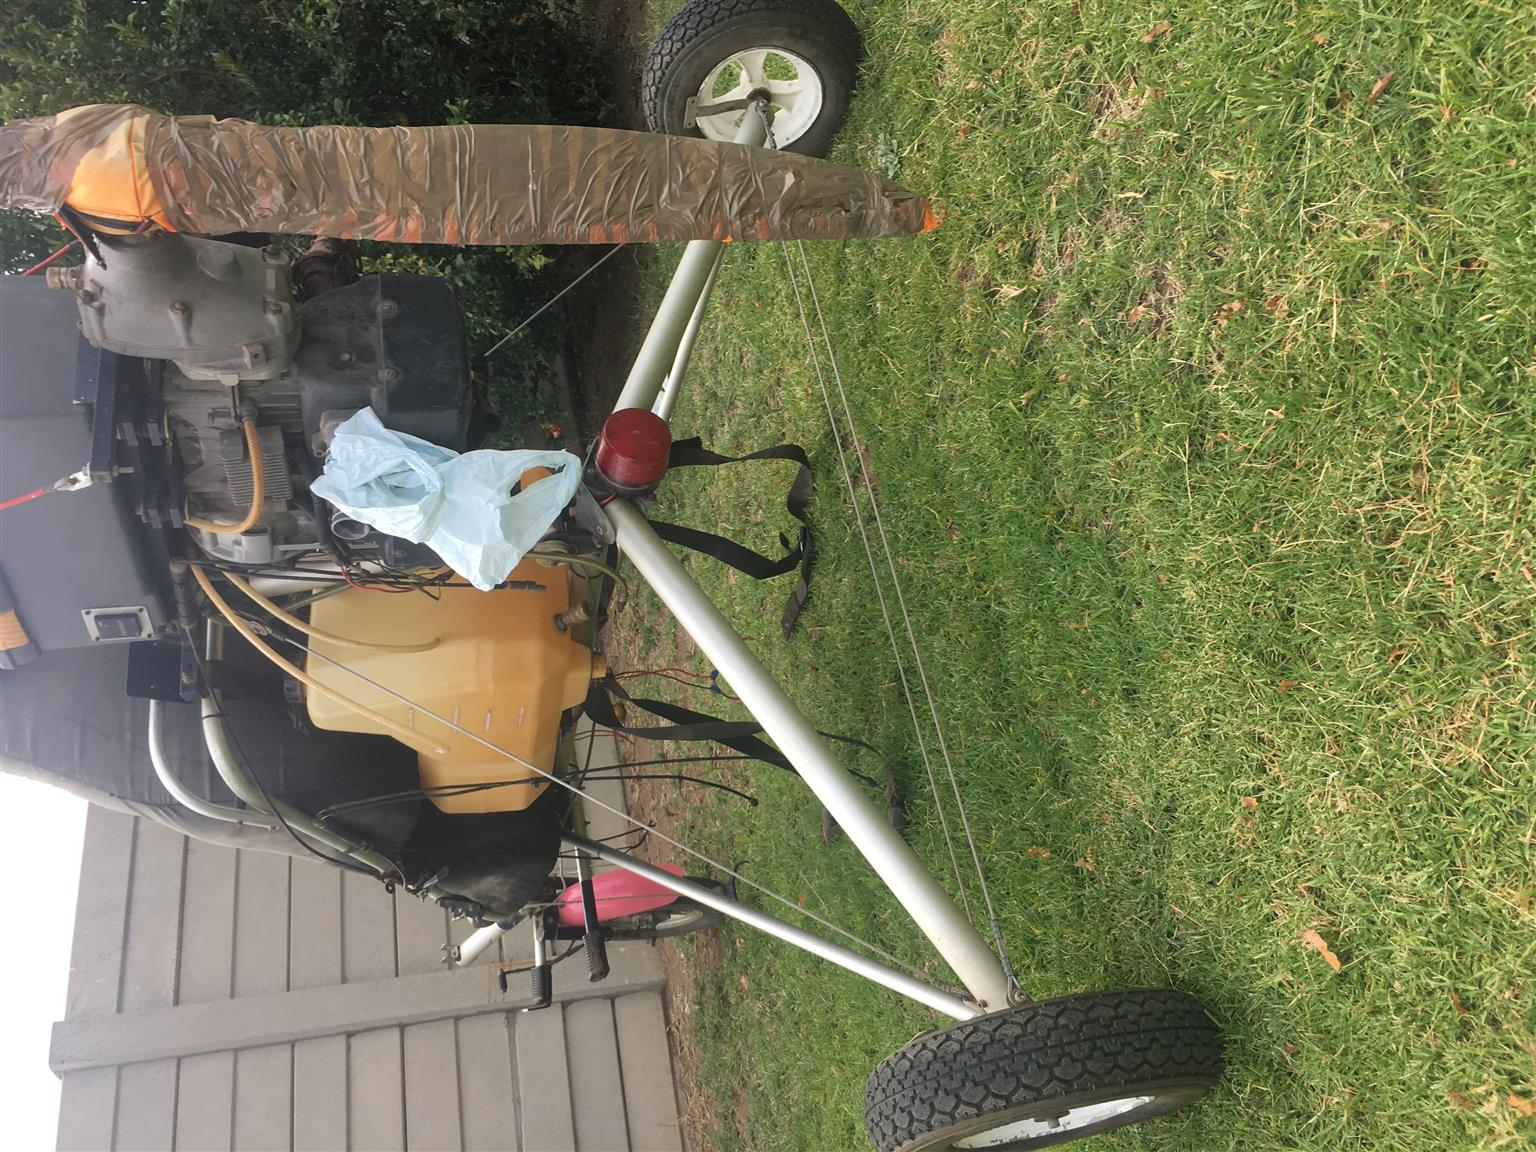 Microlight for sale